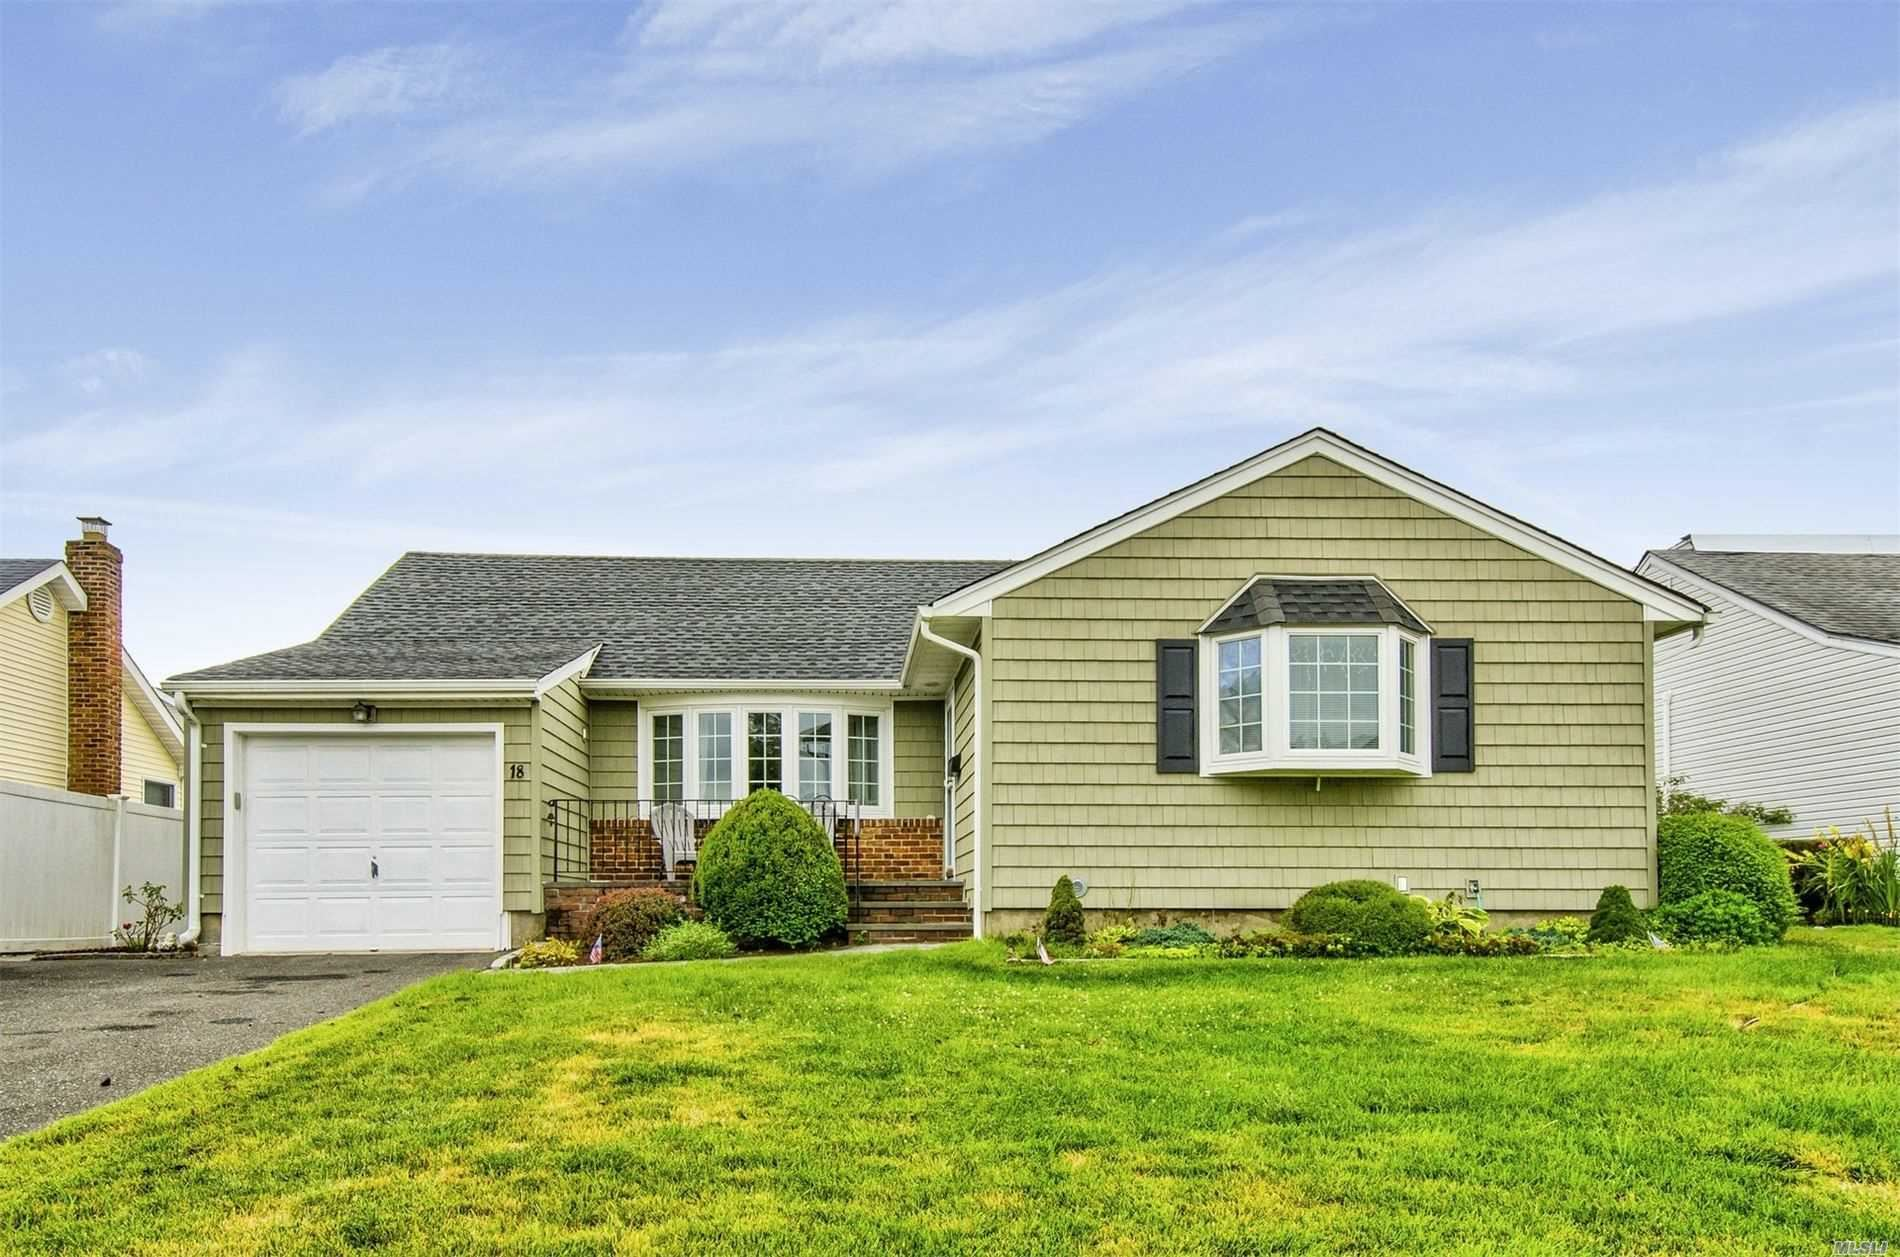 18 Clearland Ave, Carle Place, NY 11514 - MLS#: 3234086